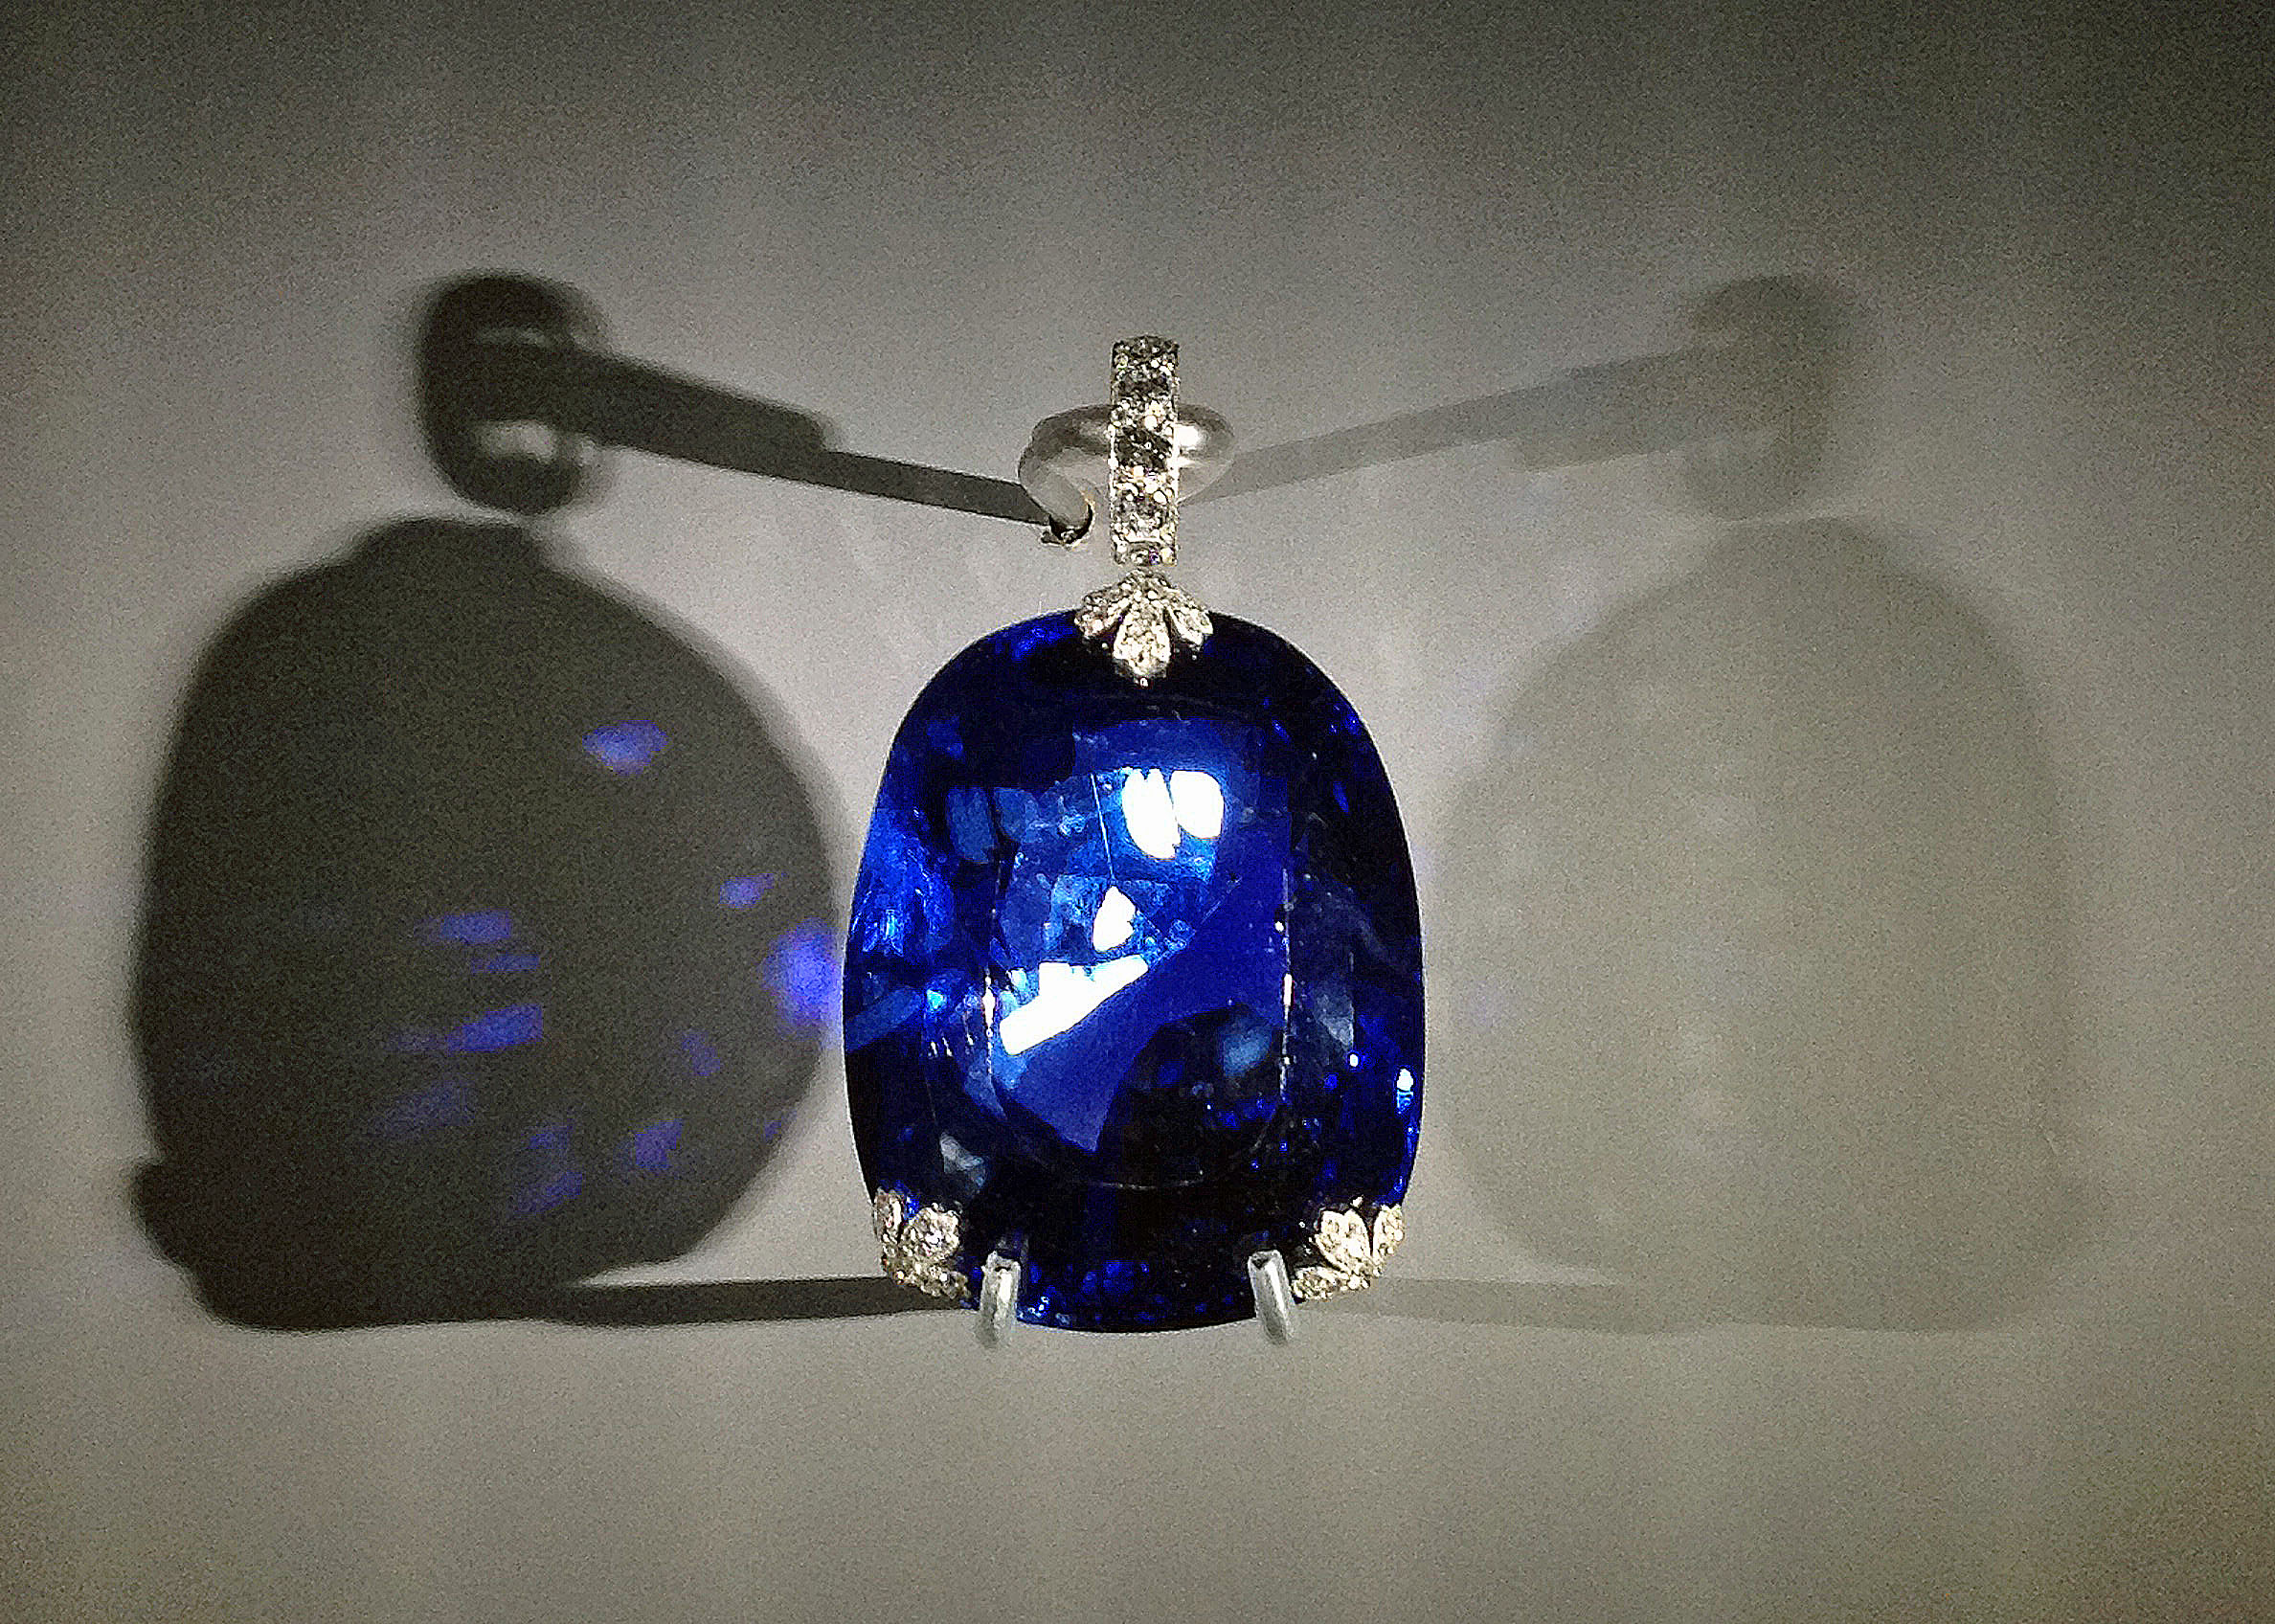 cartier jewels christies ring report online nyr christie with and s sapphire gia diamond